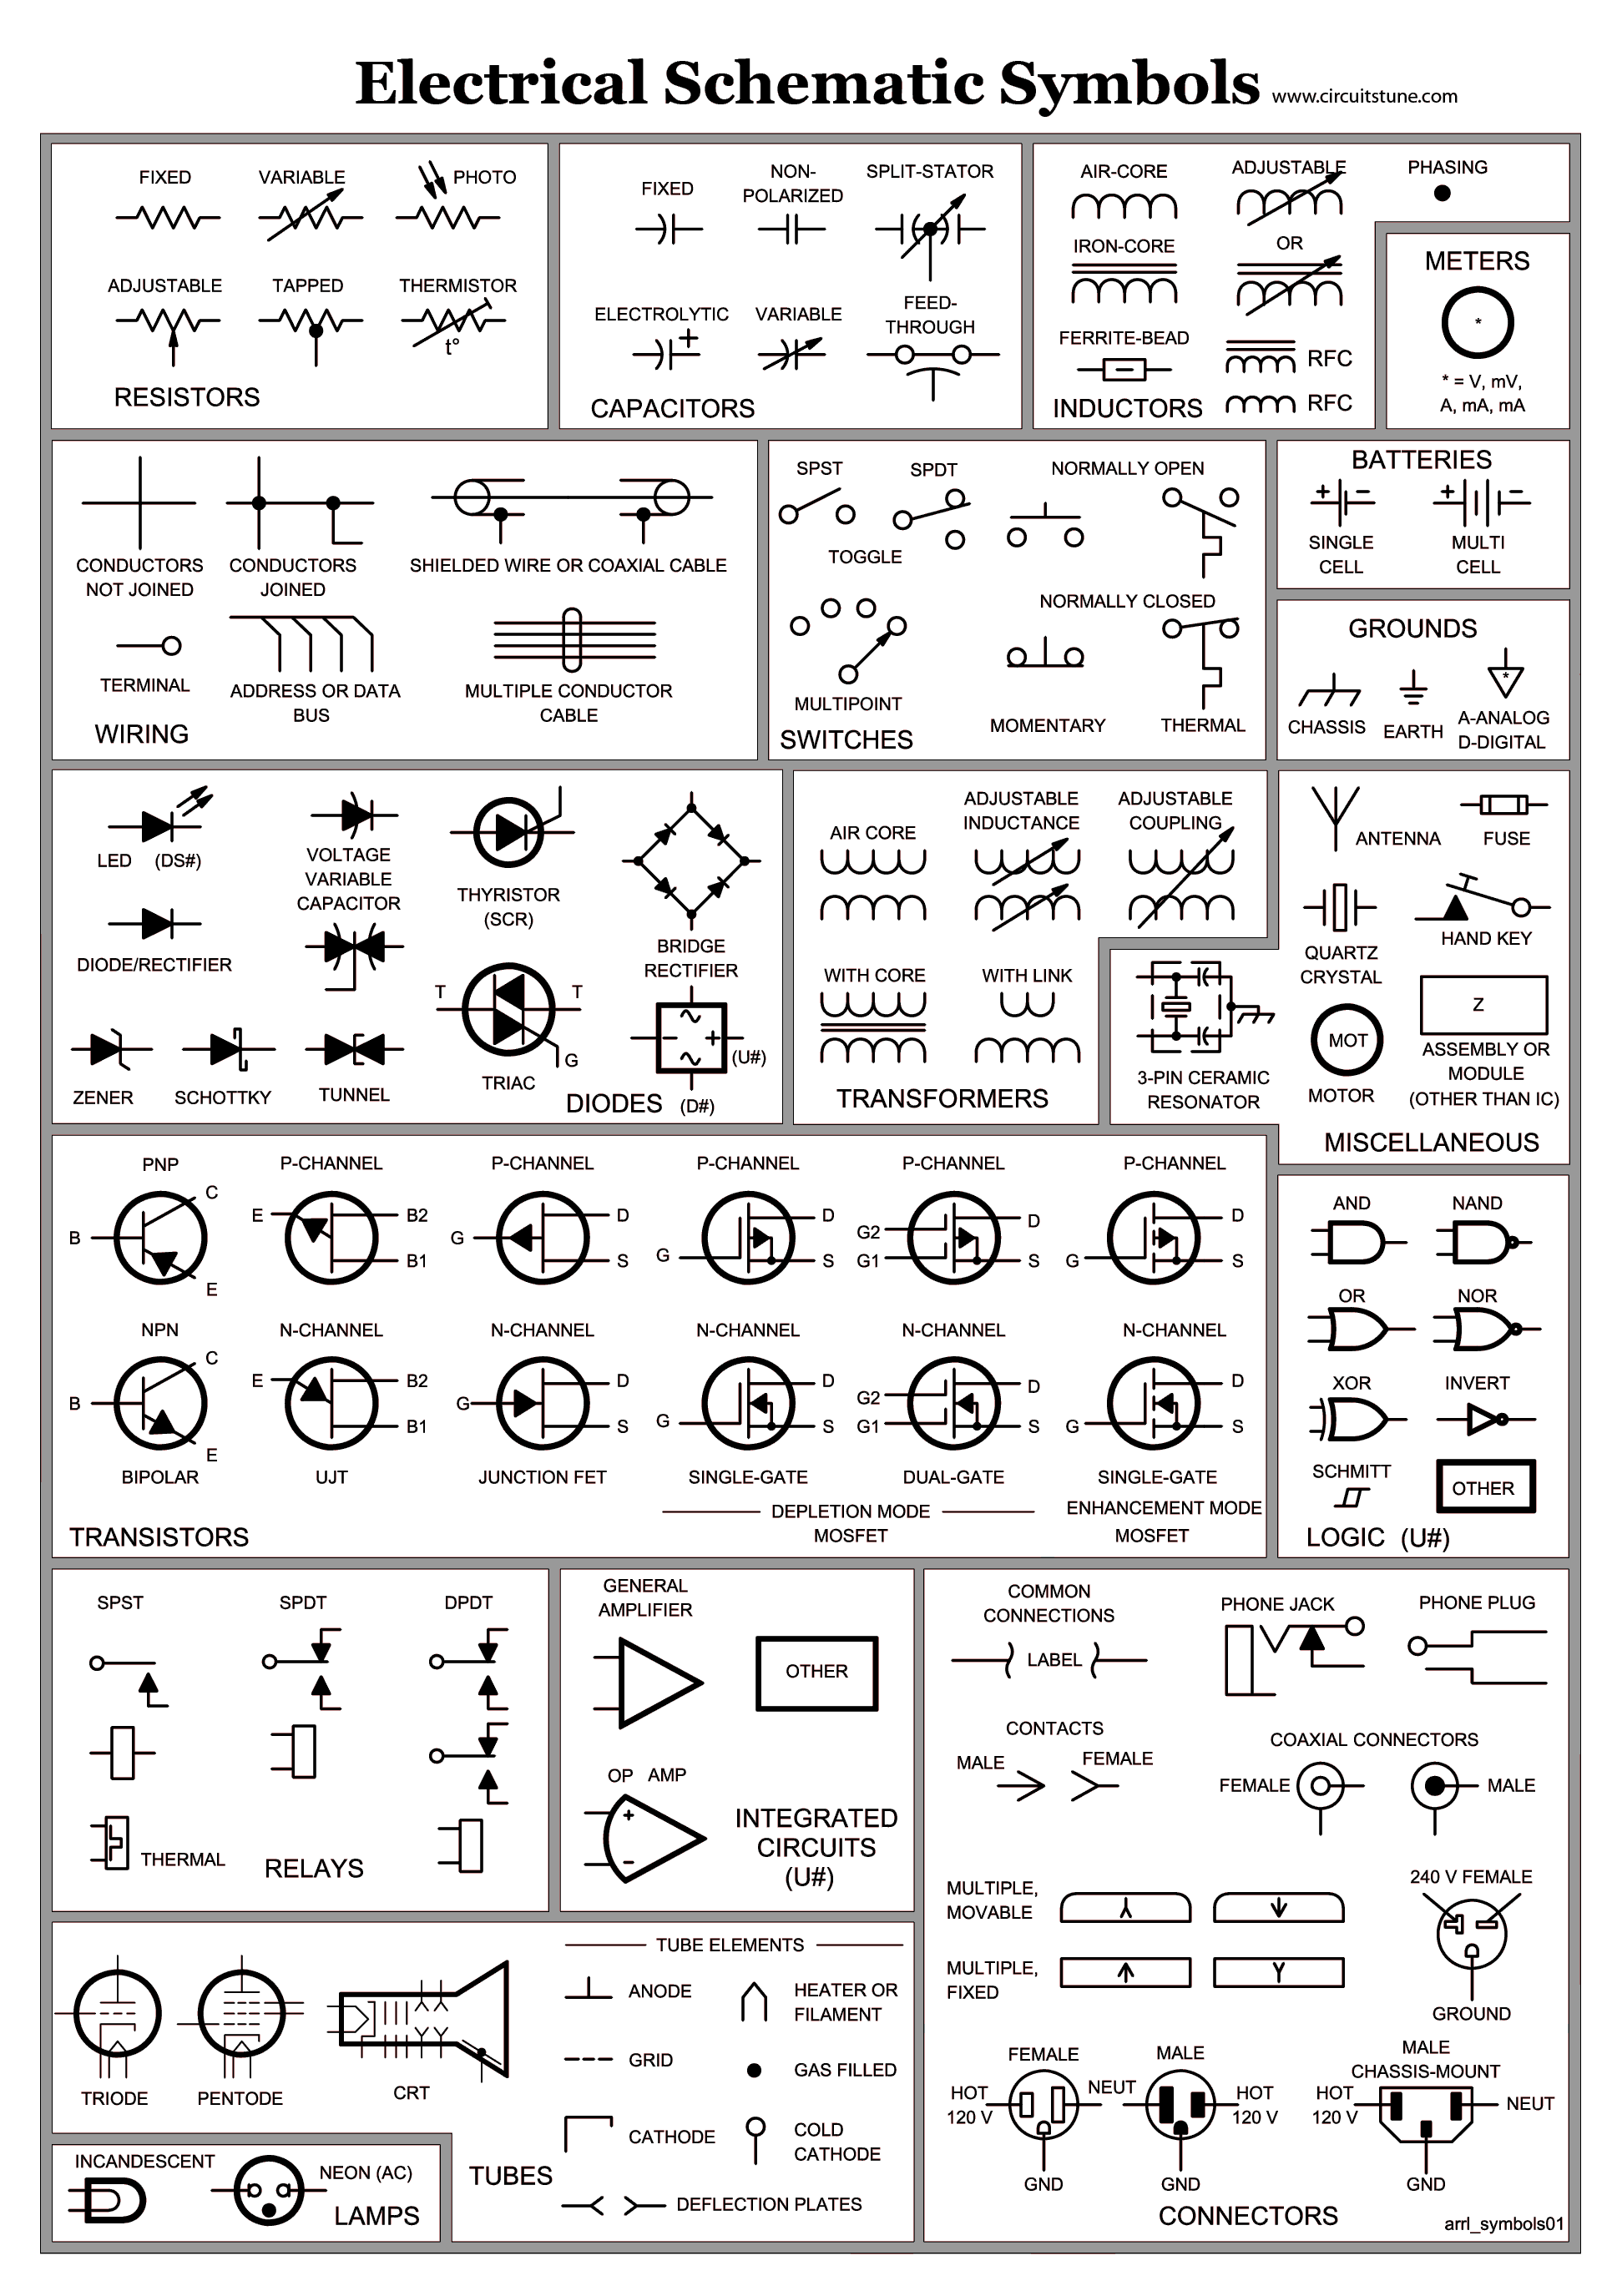 electrical schematic symbols wire diagram symbols automotive wiring rh pinterest com electrical schematic symbols limit switch electrical schematic symbols pdf